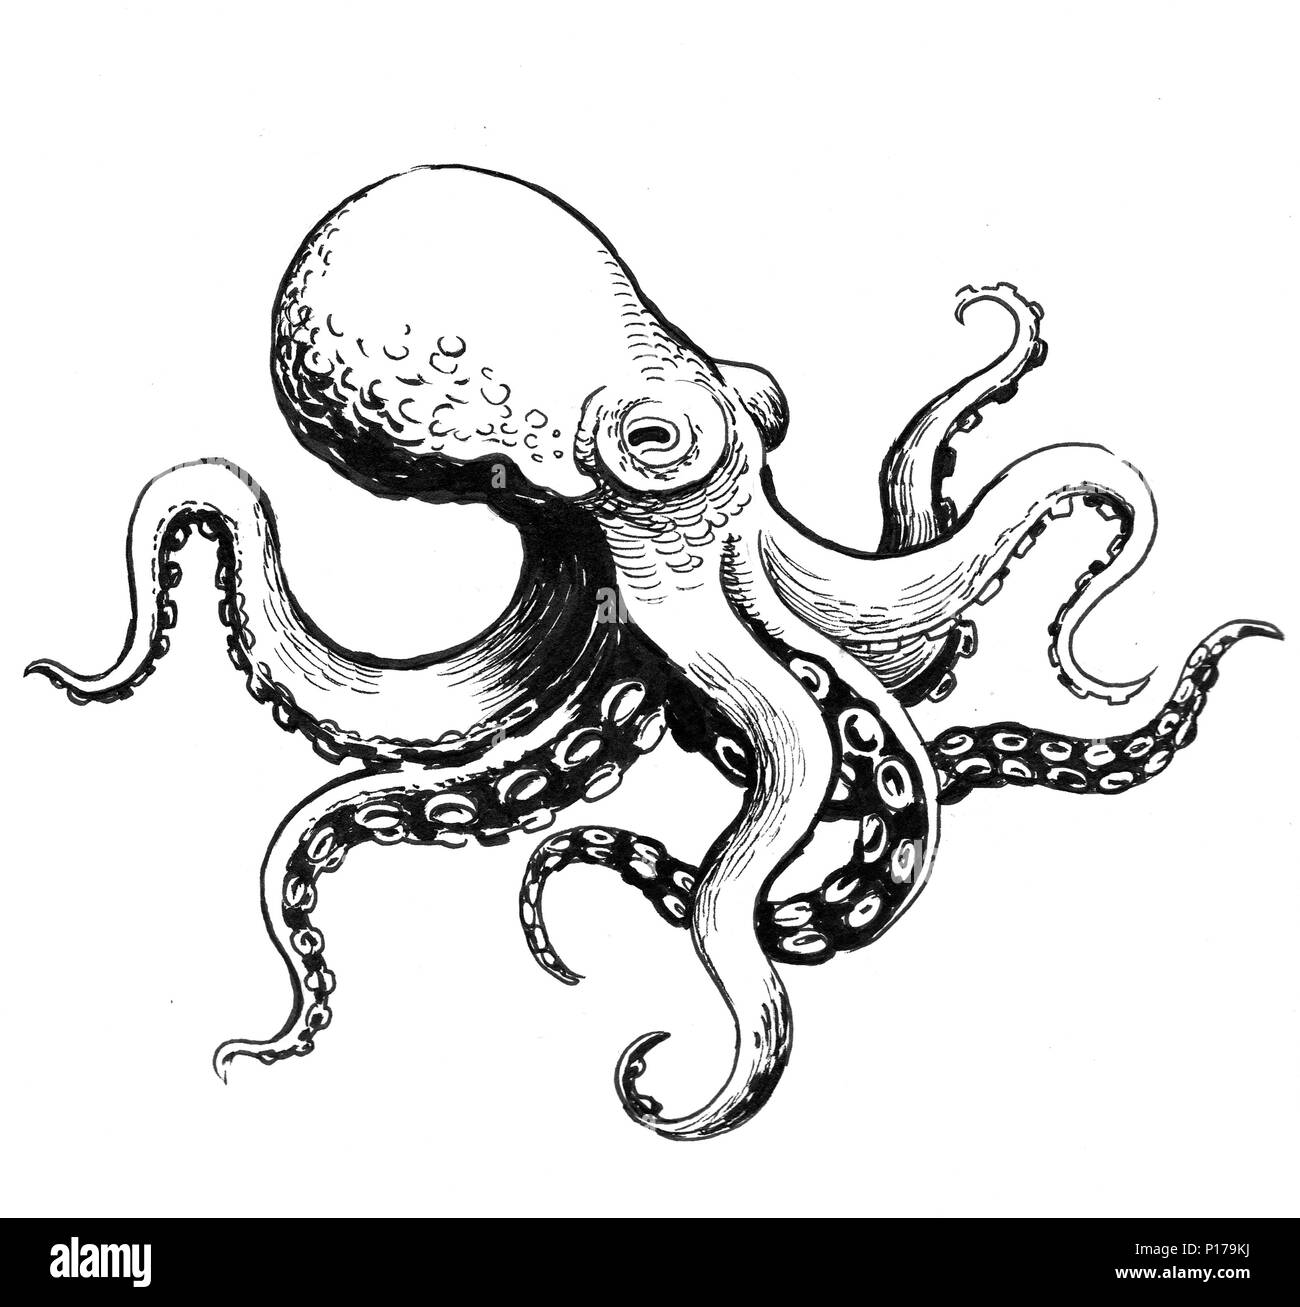 Octopus animal. Ink black and white drawing Stock Photo ...